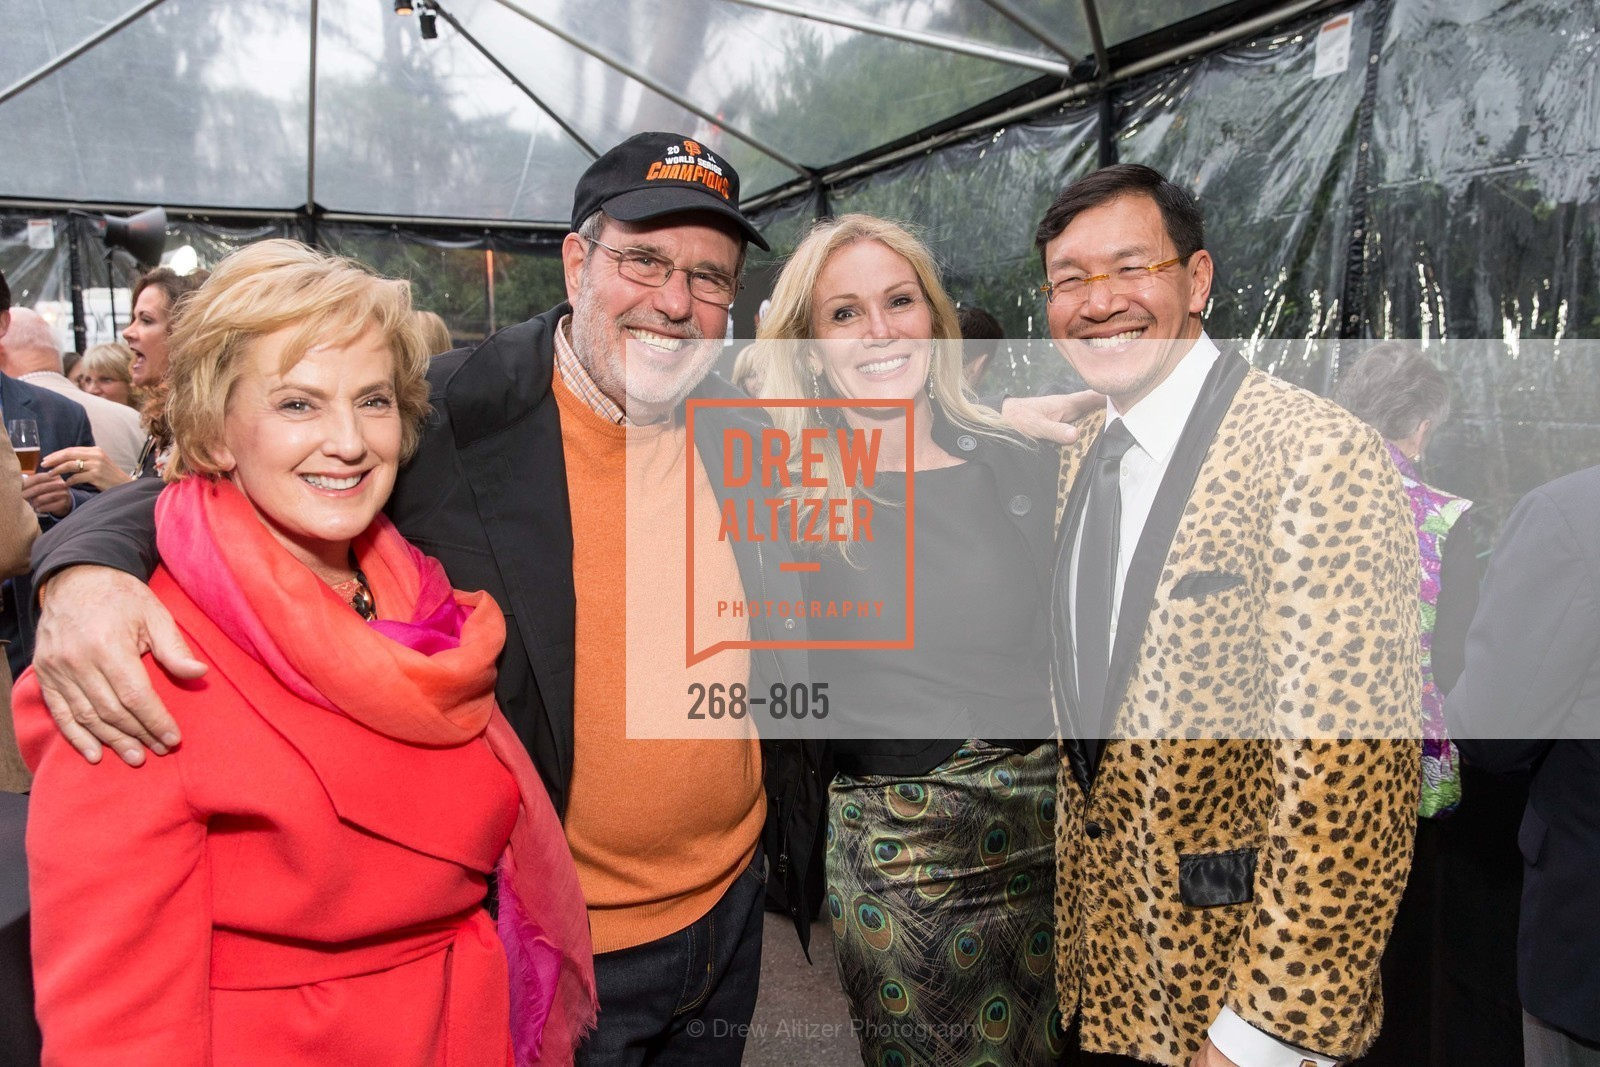 Marie Lipman, Barry Lipman, Rosemary Baker, Timothy Wu, Photo #268-805